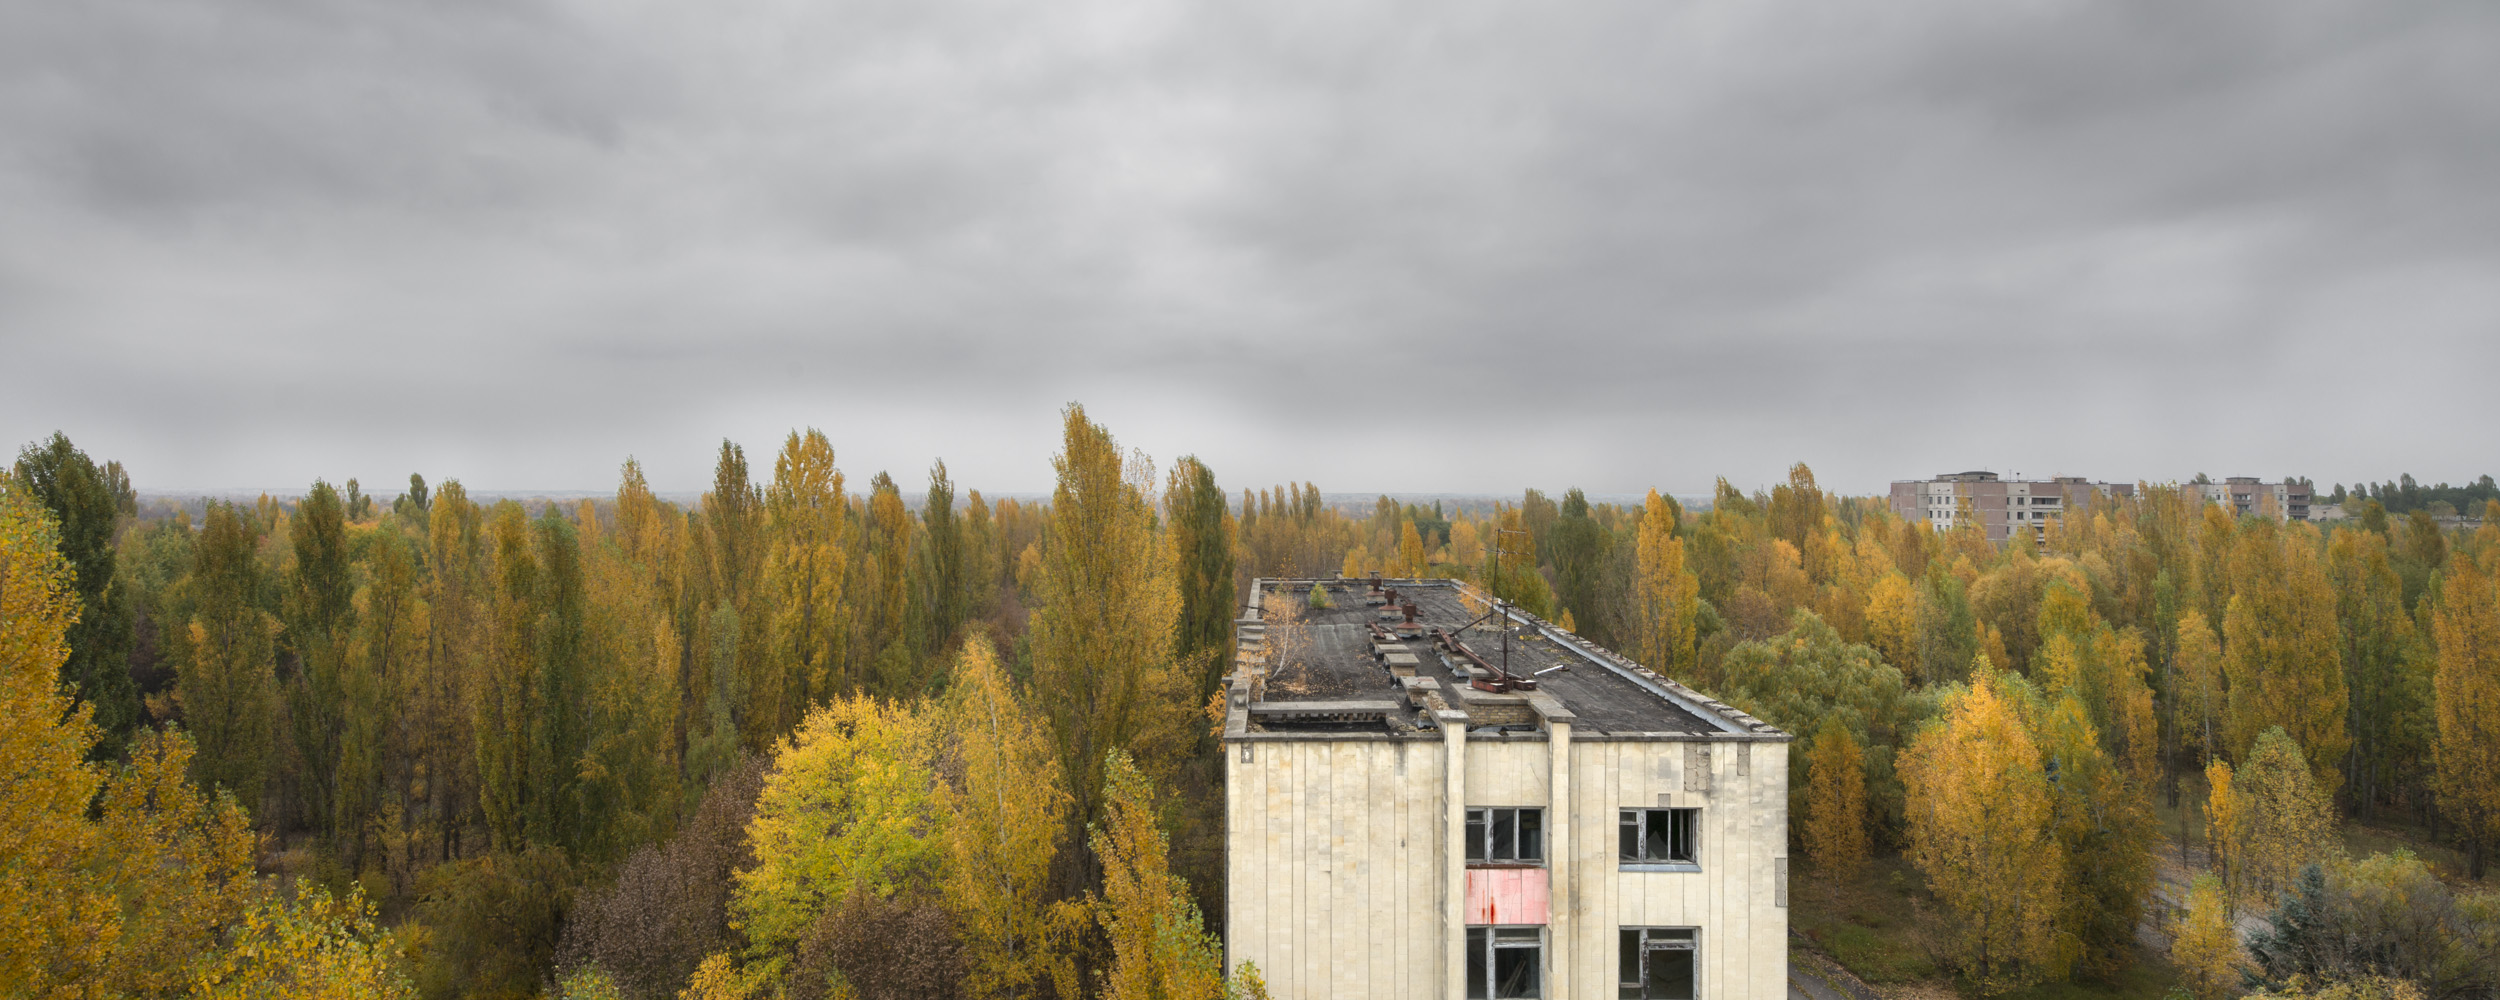 his eyes open to the harsh air # 5 - RADIOACTIVITY TURNED GREEN - cesar azcarate, fotografia